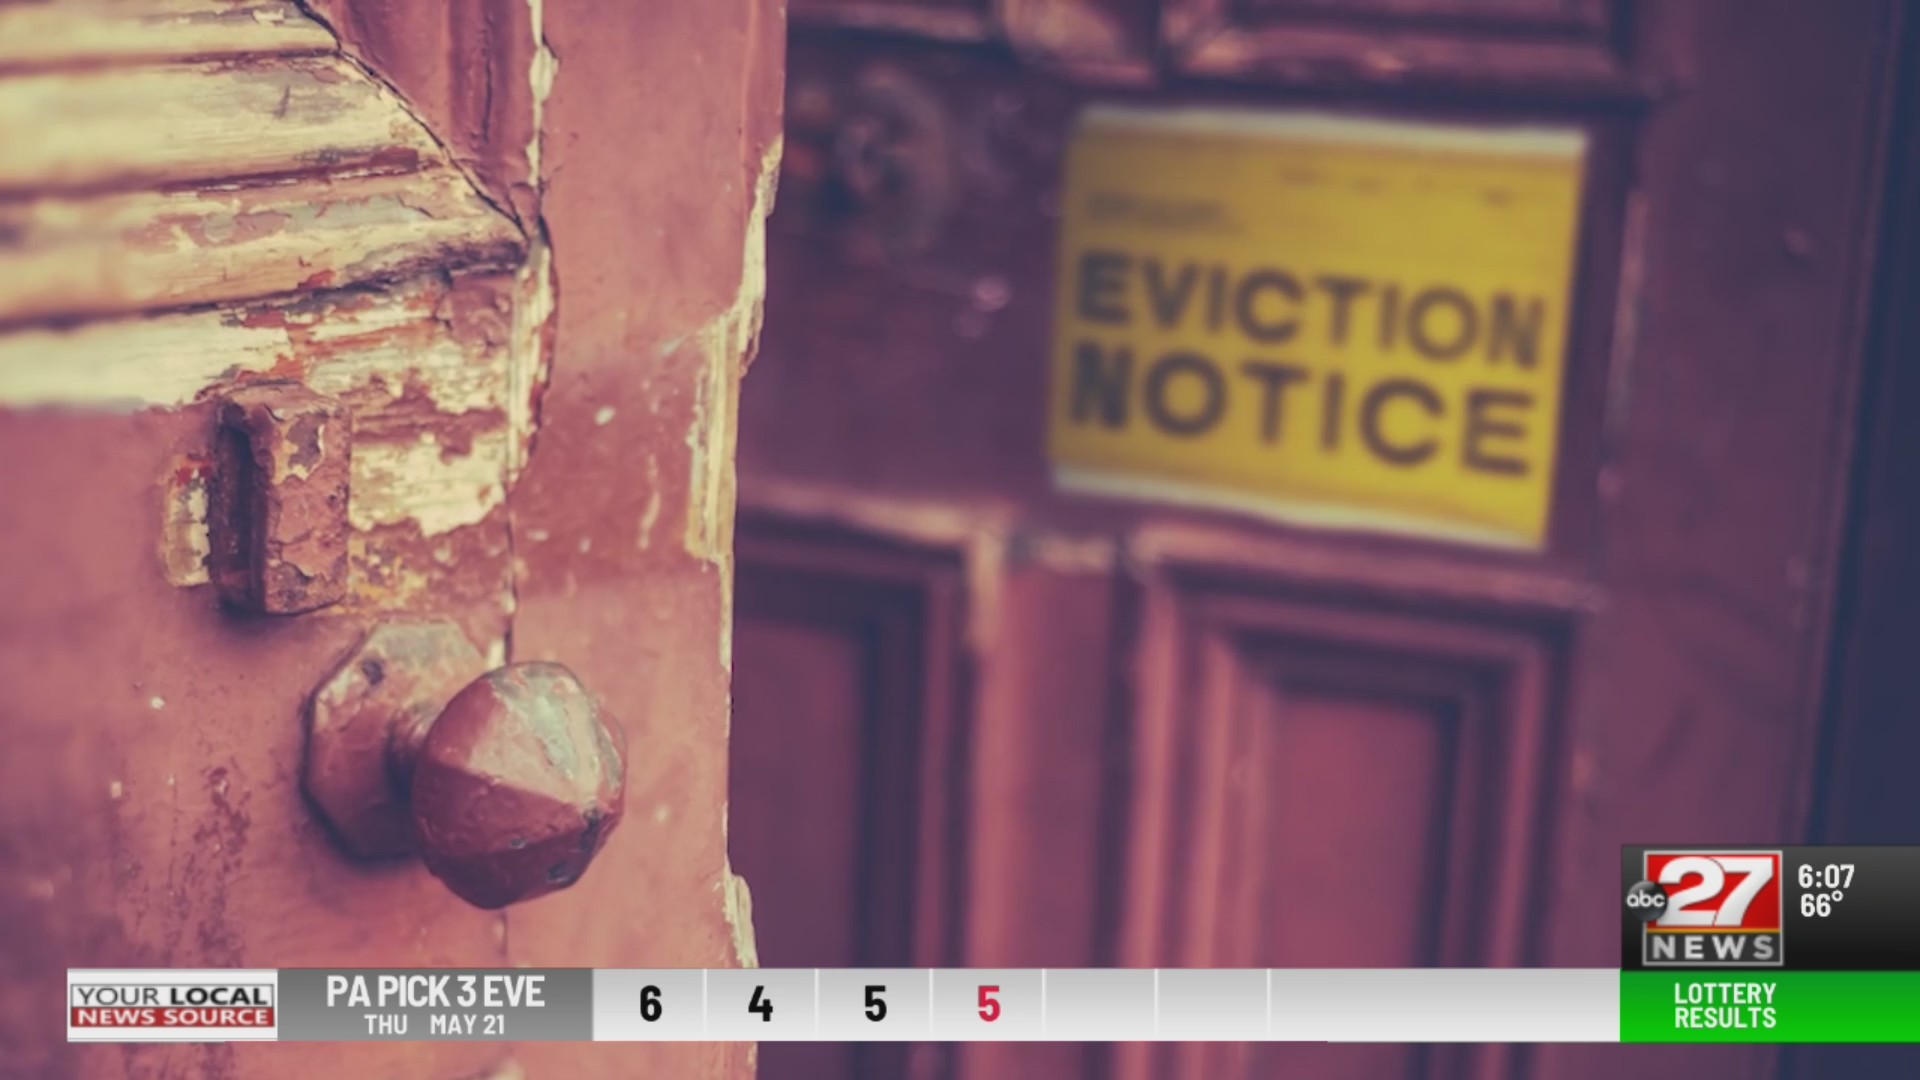 Governor S No Eviction Order Does Not Apply To Commercial Properties Abc27